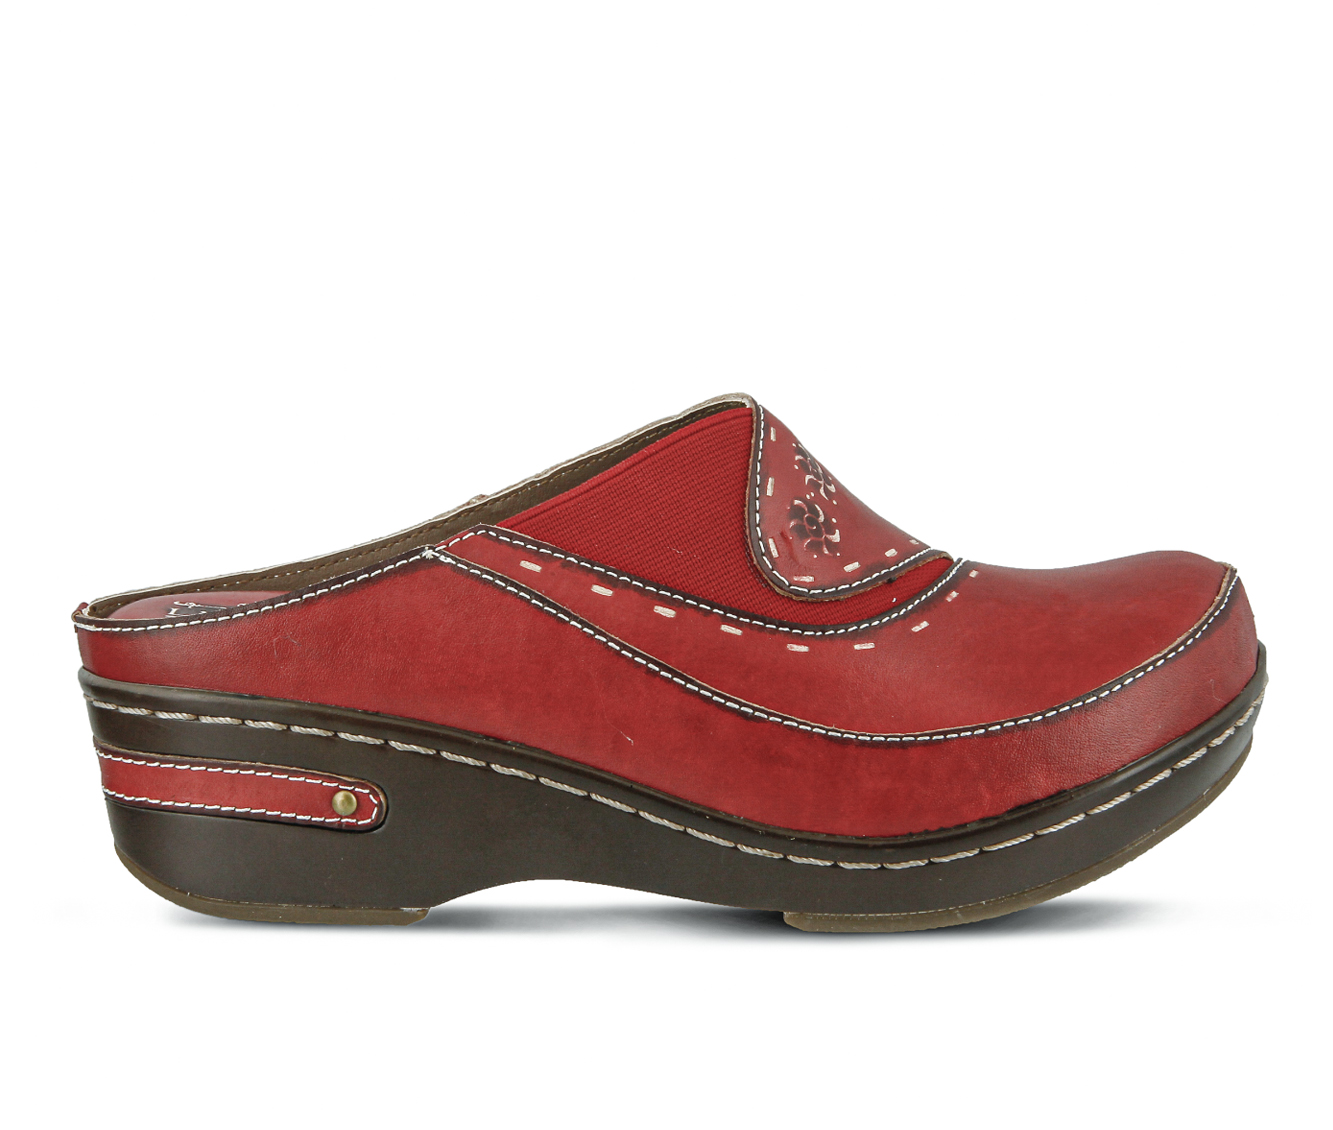 L'Artiste Chino Women's Shoe (Red Leather)